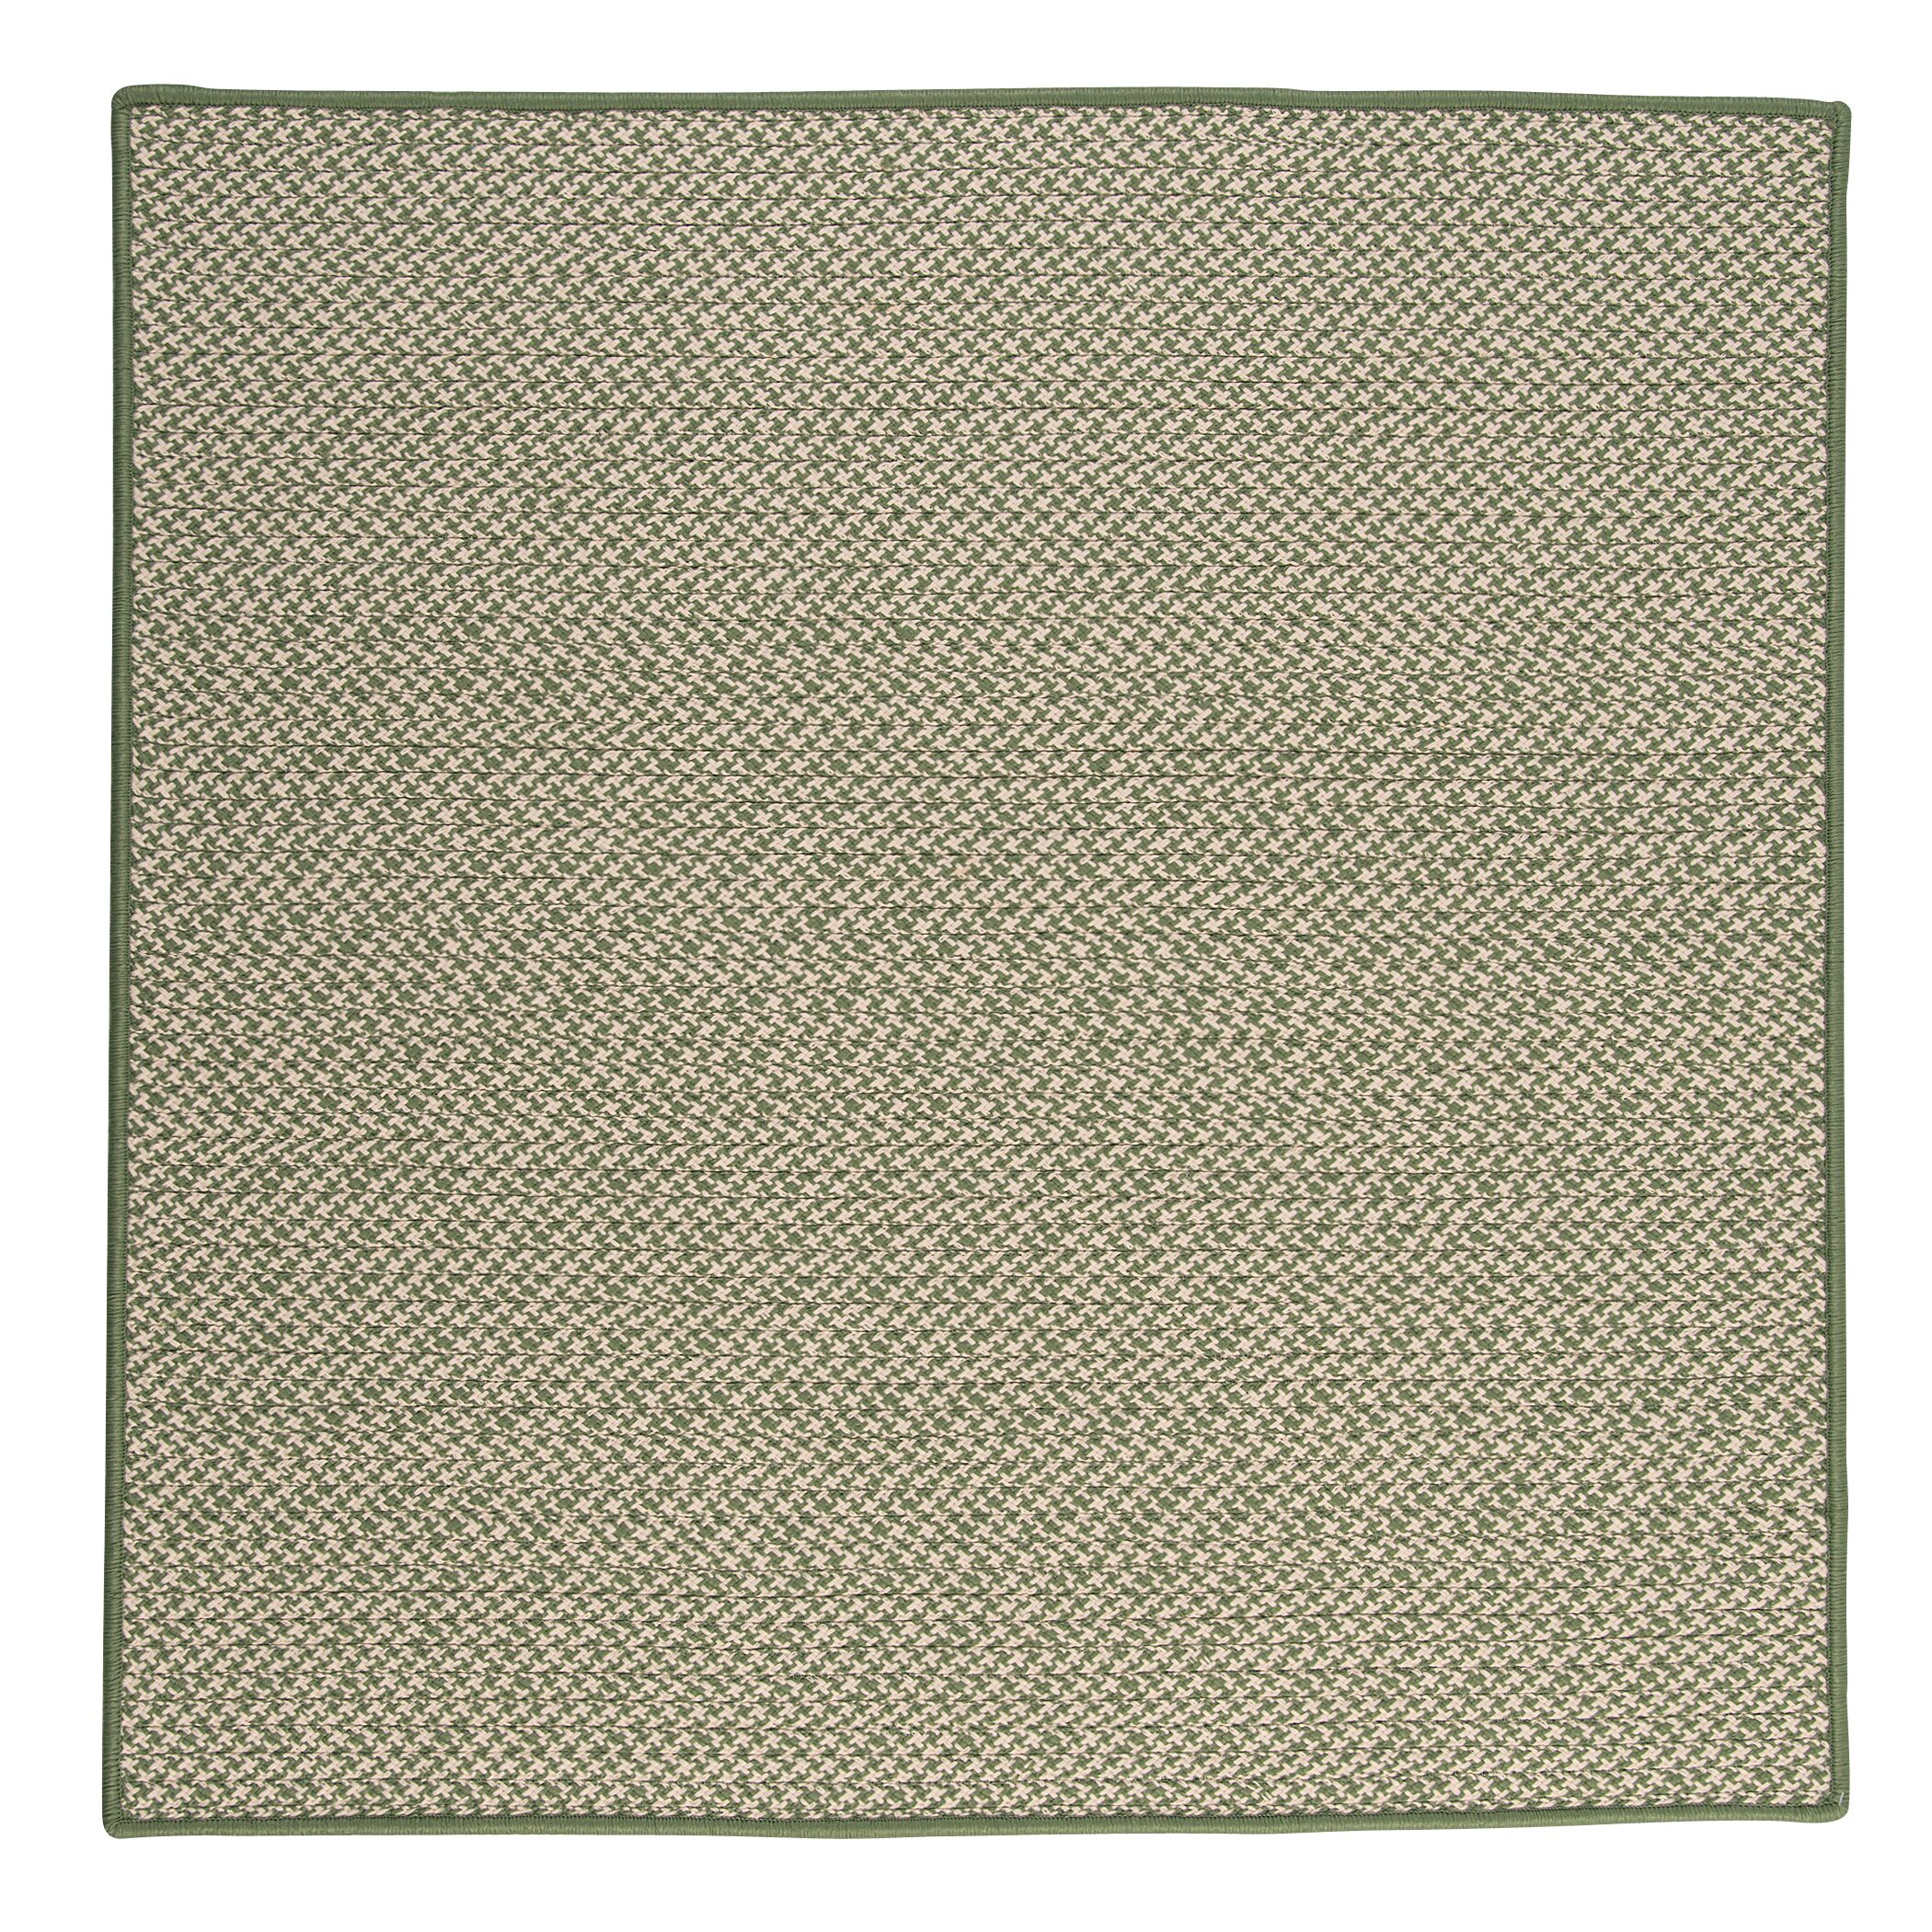 Outdoor Houndstooth Tweed Leaf Green Rug Rug Size: Square 4'